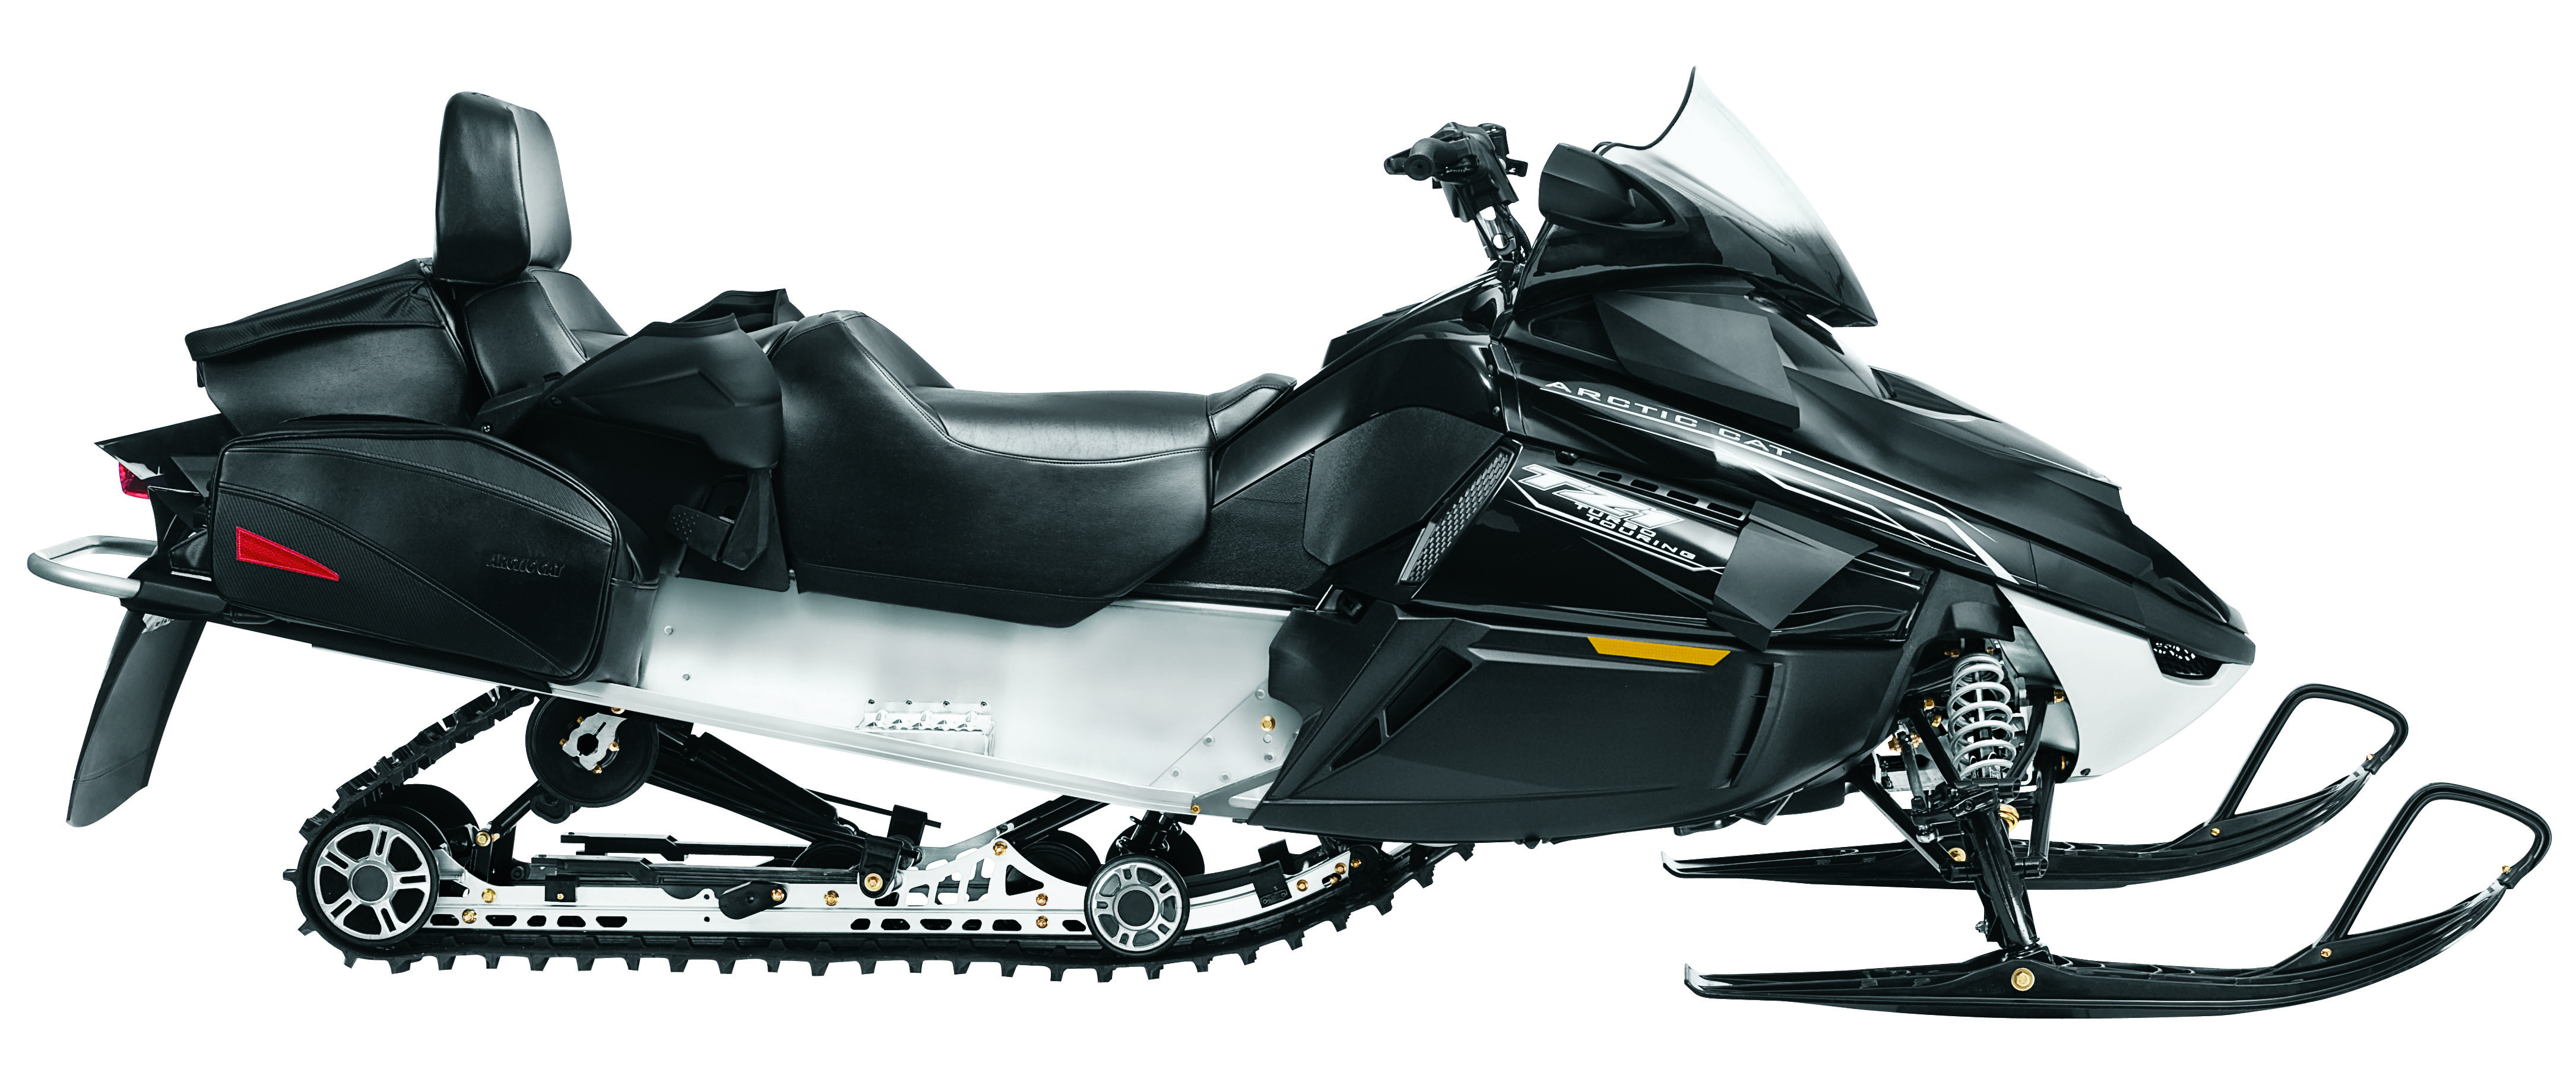 Arctic Cat Recalls Snowmobiles Due To Fire Hazard Recall Alert 2014 Ski Doo Snowmobile Headlight Wiring Diagram Model Year 2009 Tz1 Turbo